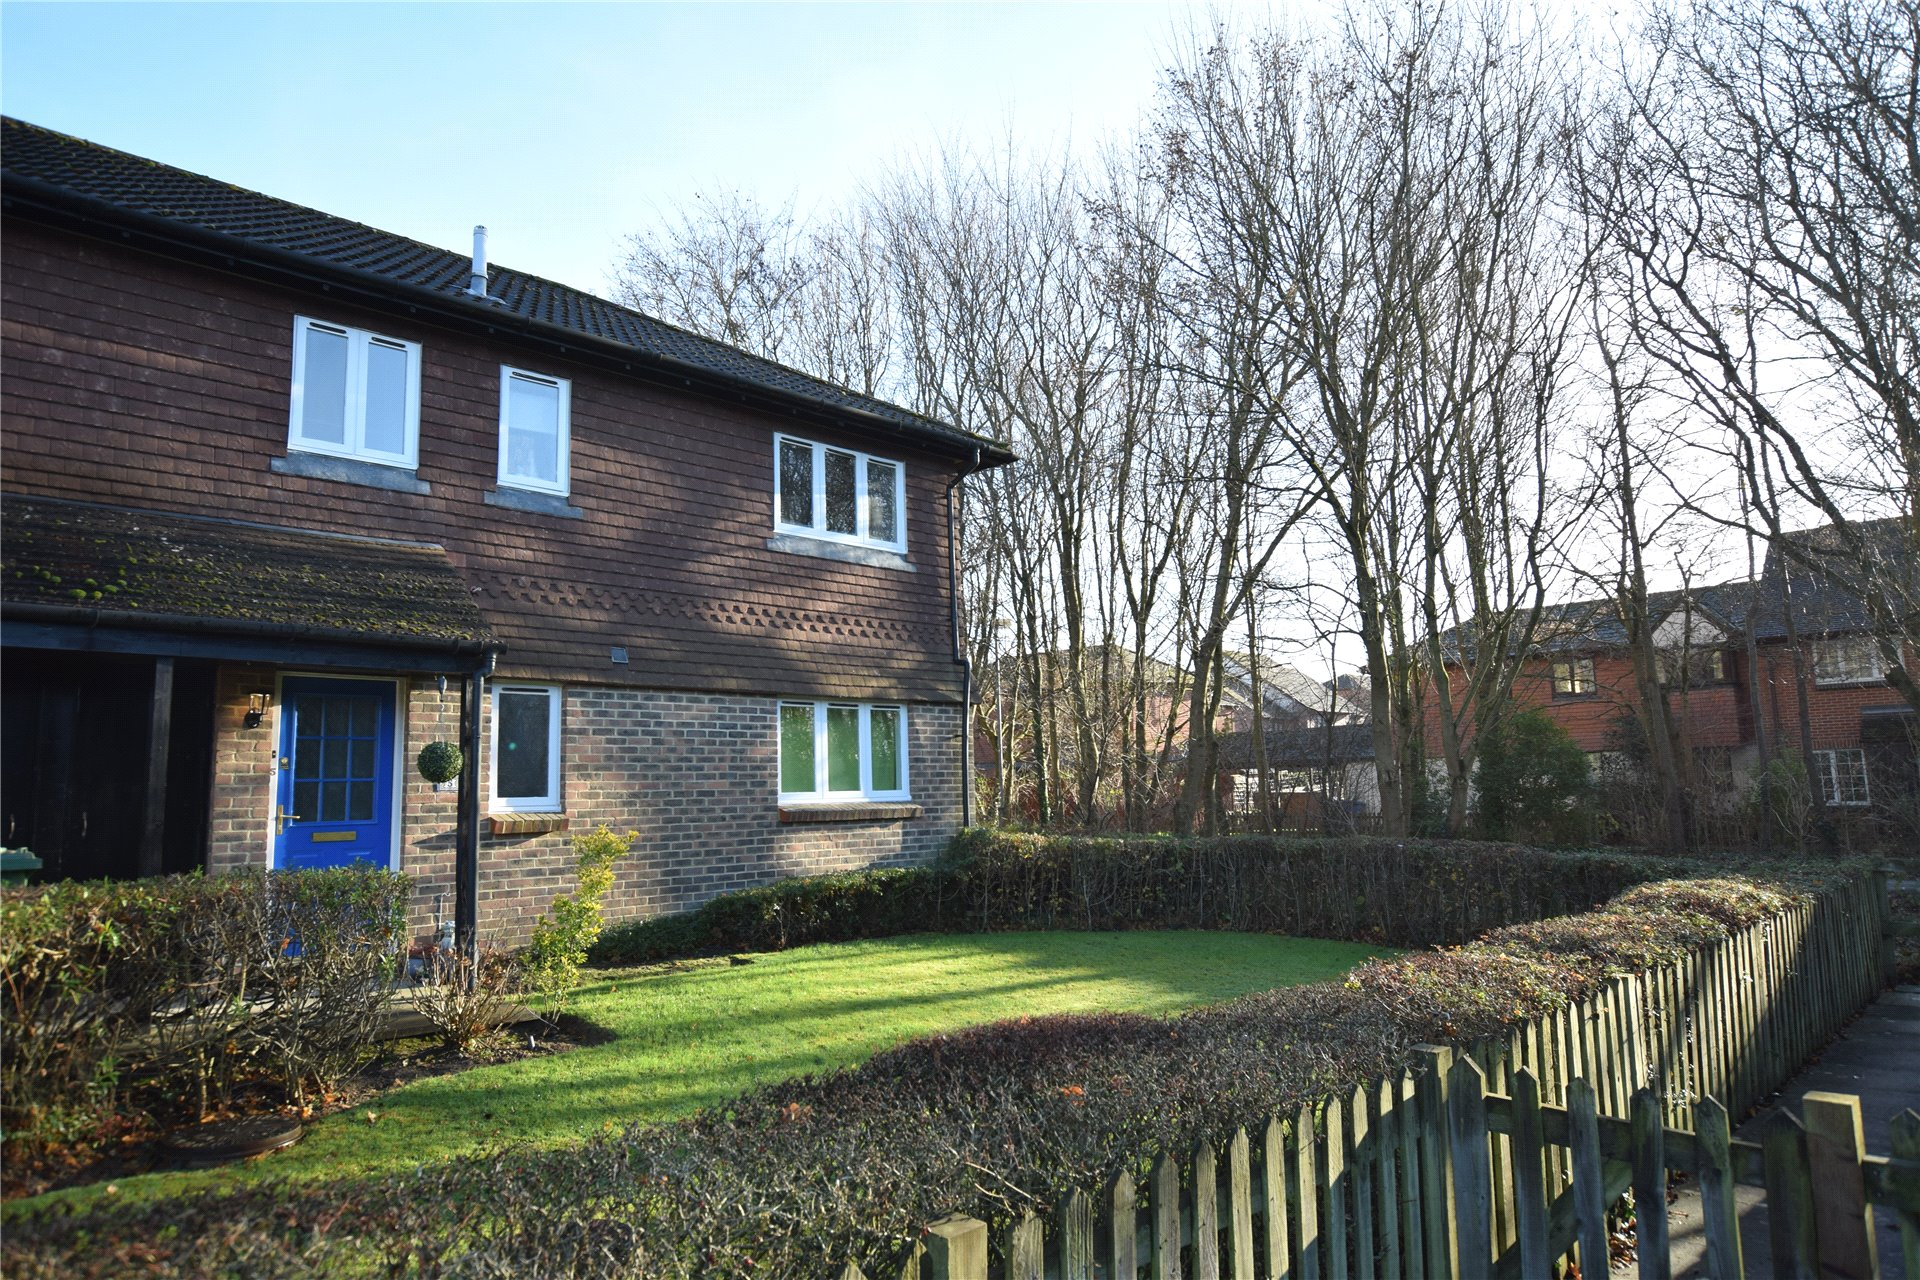 2 Bedrooms Maisonette Flat for sale in Othello Grove, Warfield, Berkshire, RG42